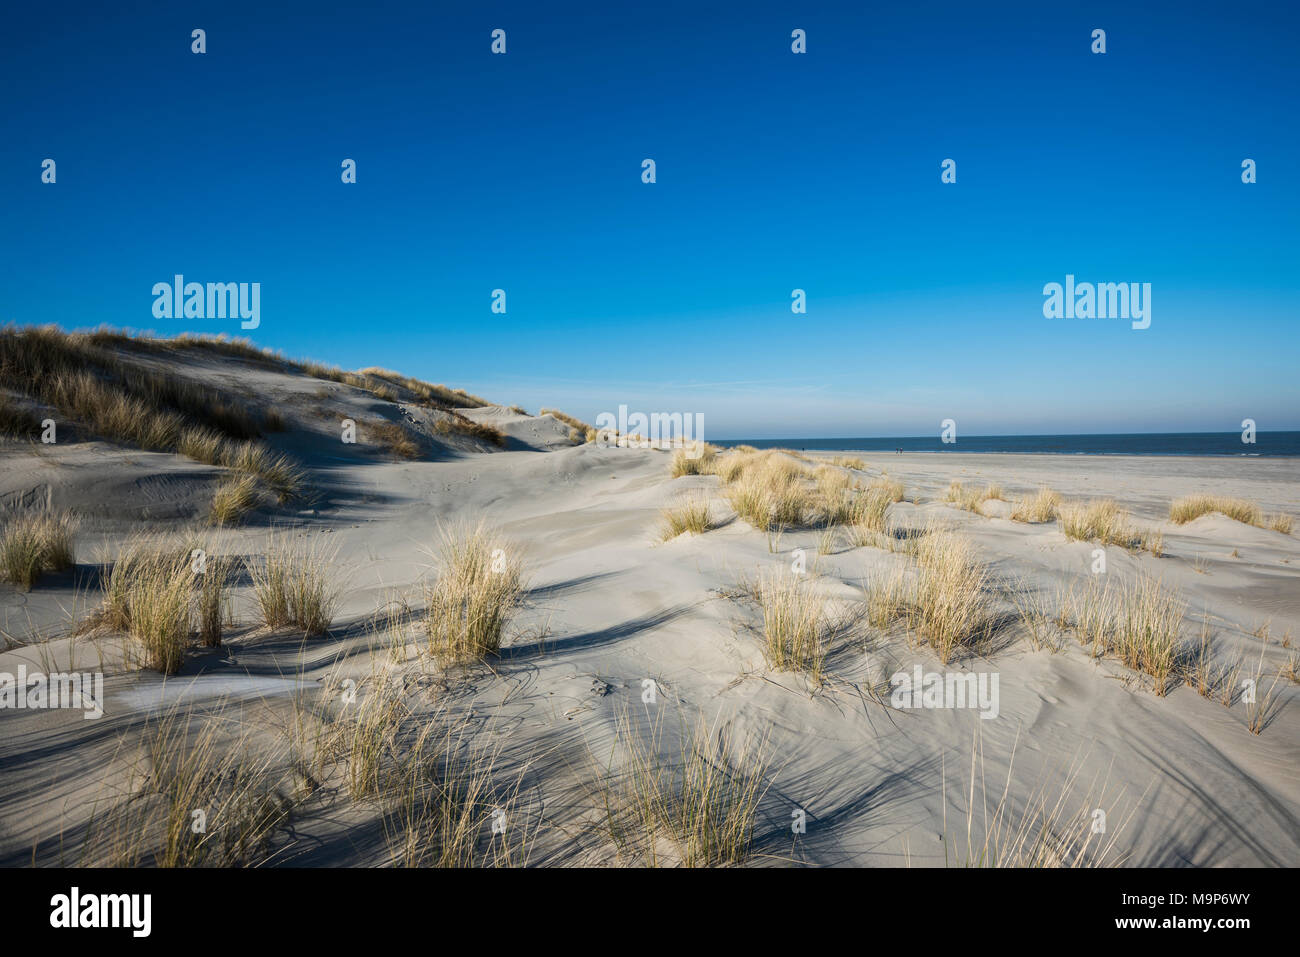 Dunes and blue skies off the North Sea, Spiekeroog, East Frisian Islands, East Frisia, Lower Saxony, Germany - Stock Image